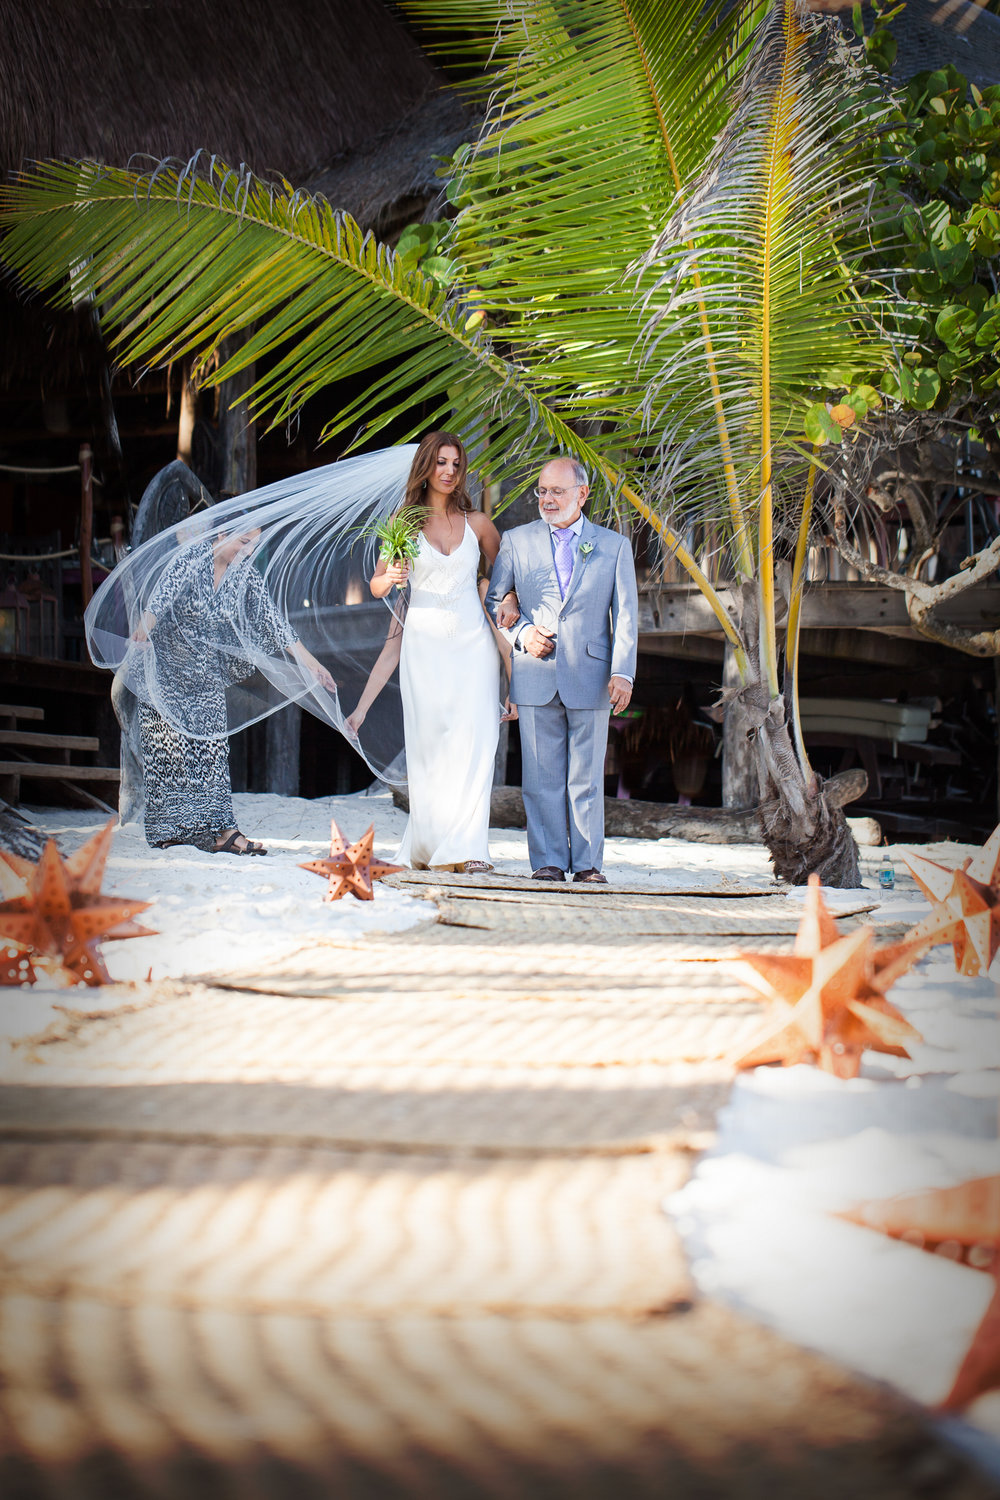 emedina_tulum_wedding_137.JPG